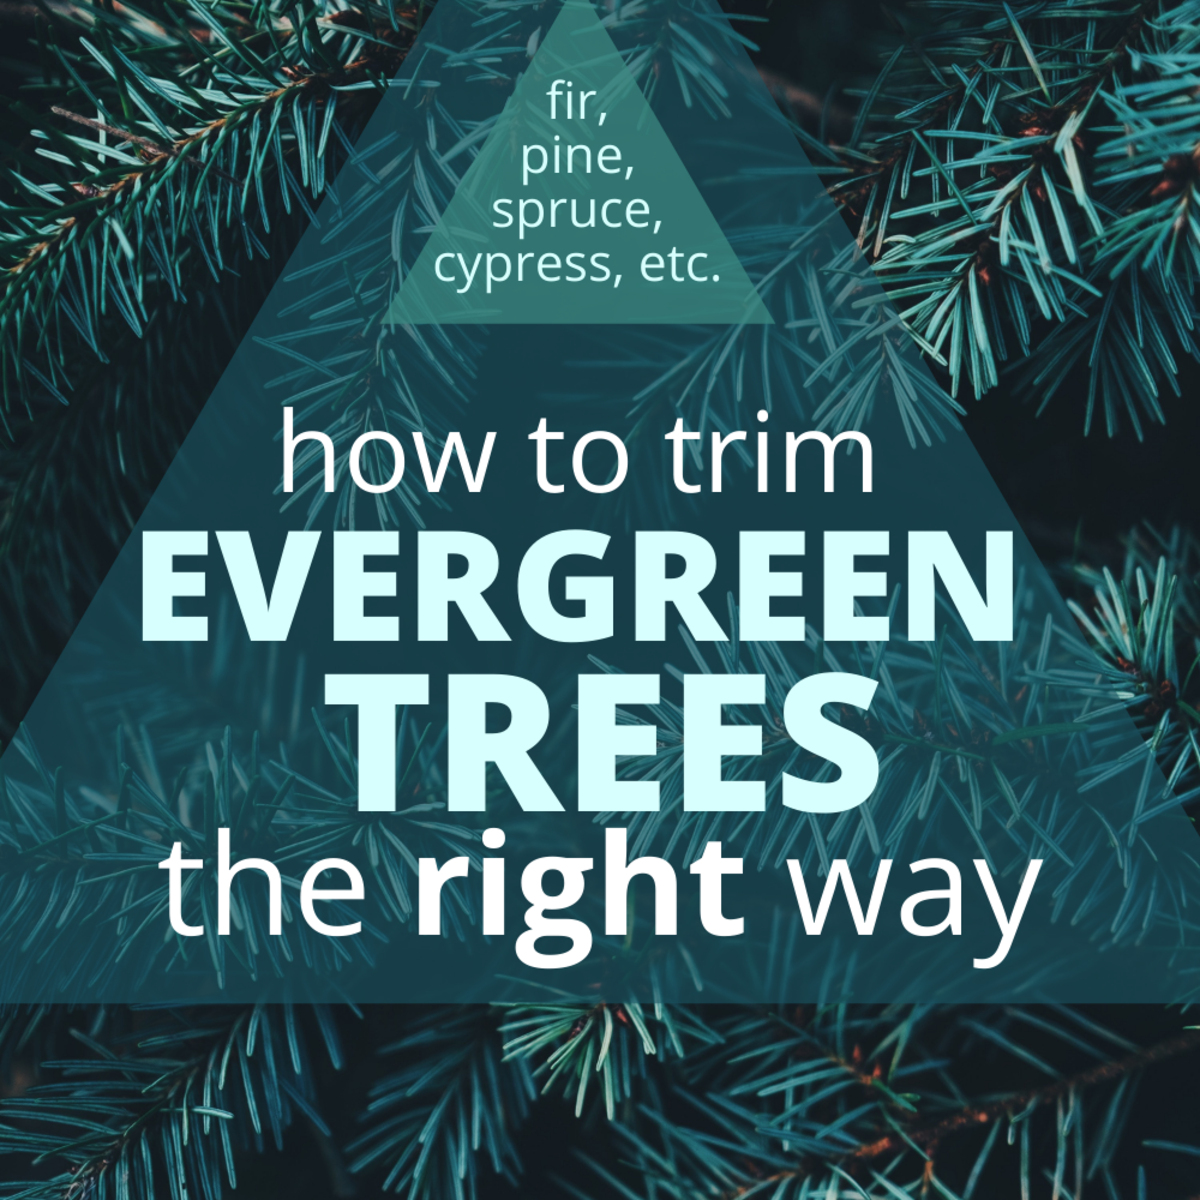 Learn which branches can you prune on an evergreen tree and how to do it.